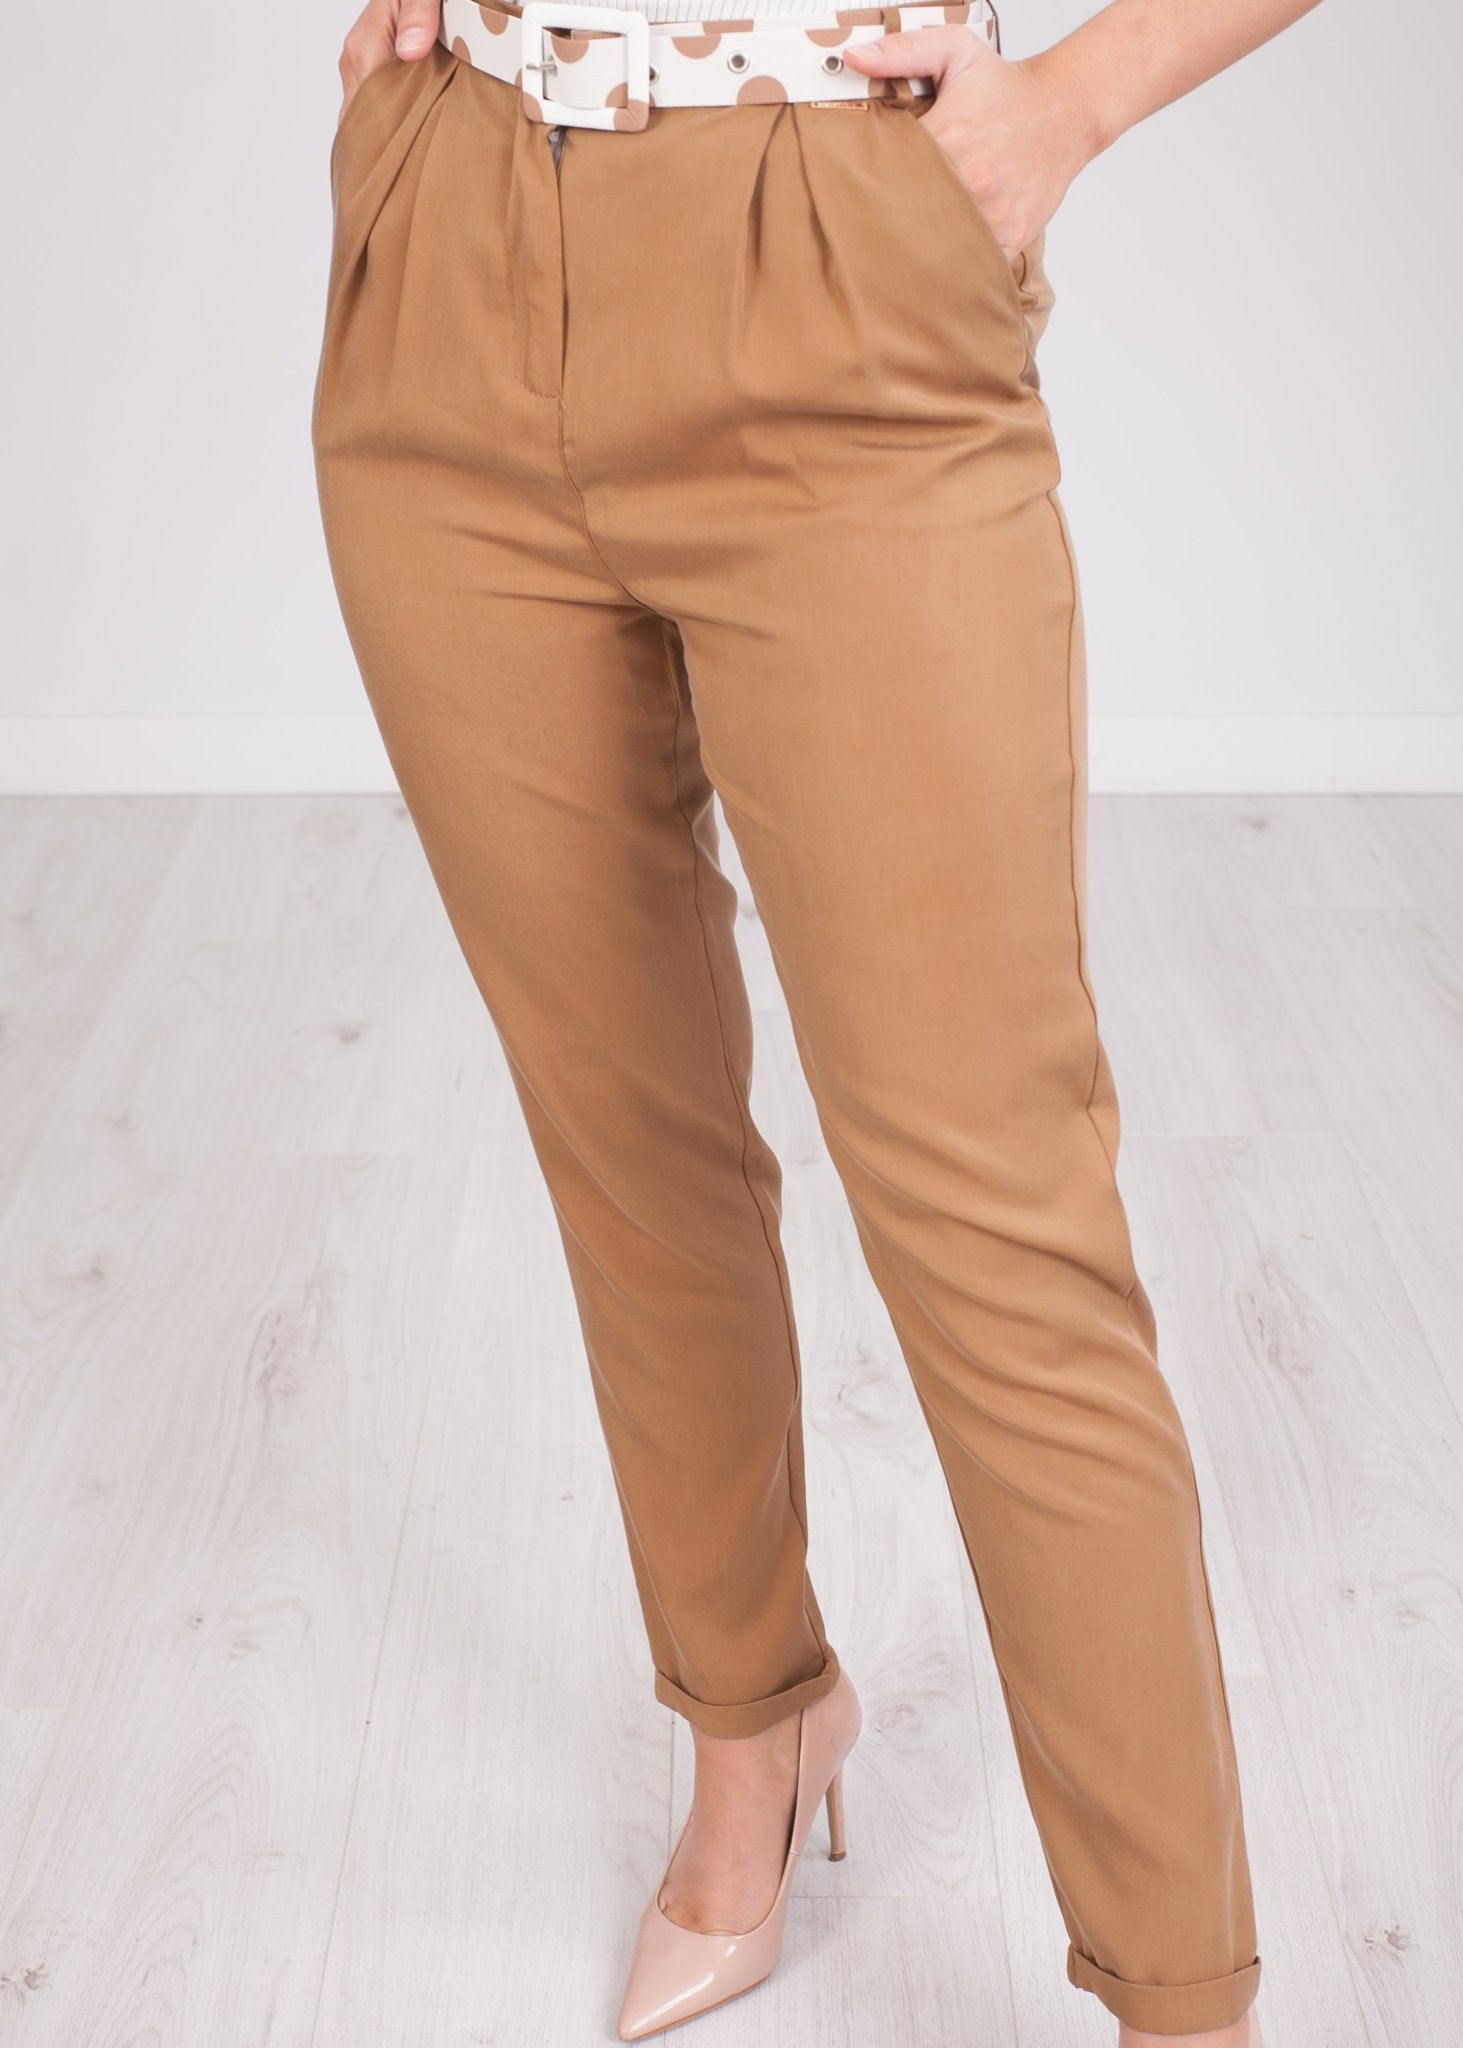 Tina Tan Trousers - The Walk in Wardrobe